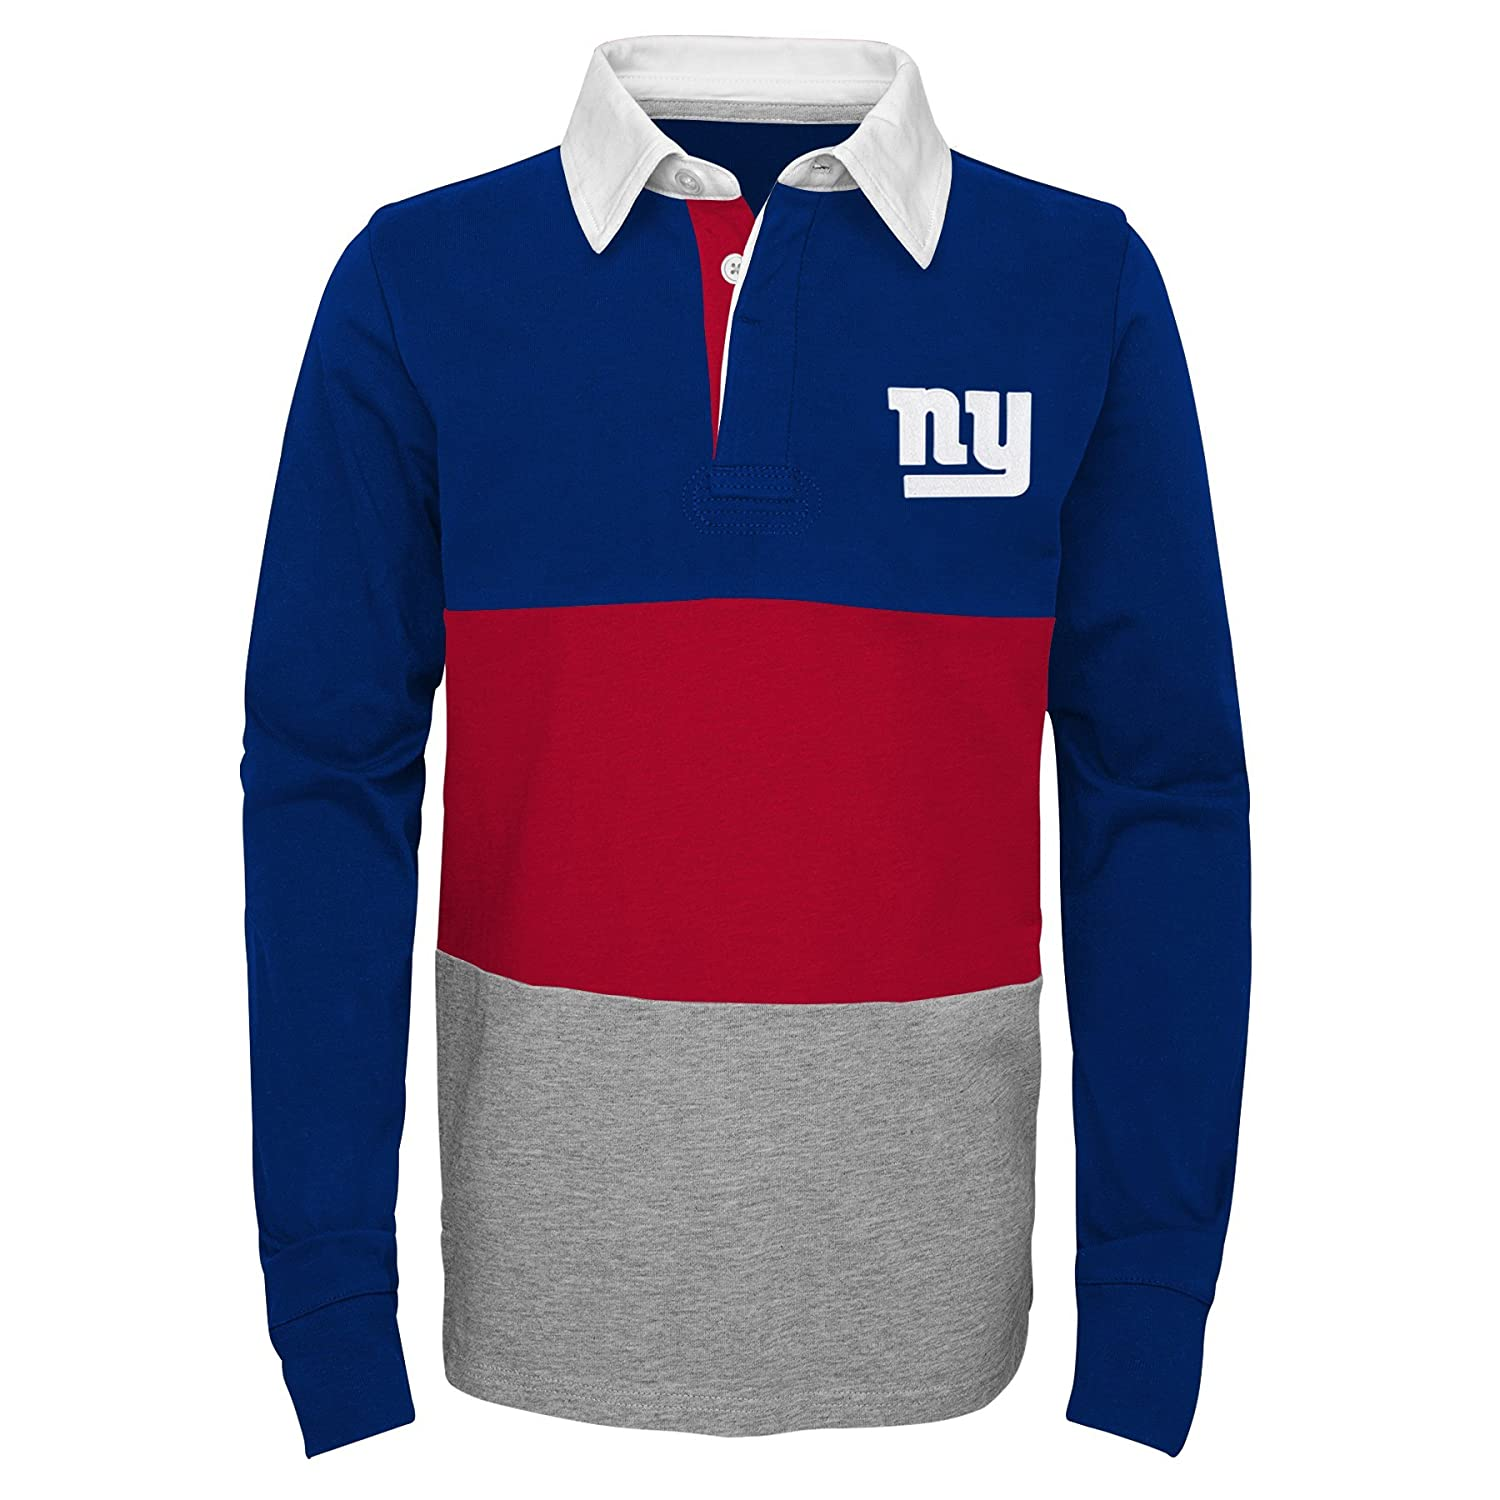 14-16 Outerstuff NFL New York Giants Youth Boys State of Mind Long Sleeve Rugby Top Dark Royal Youth Large